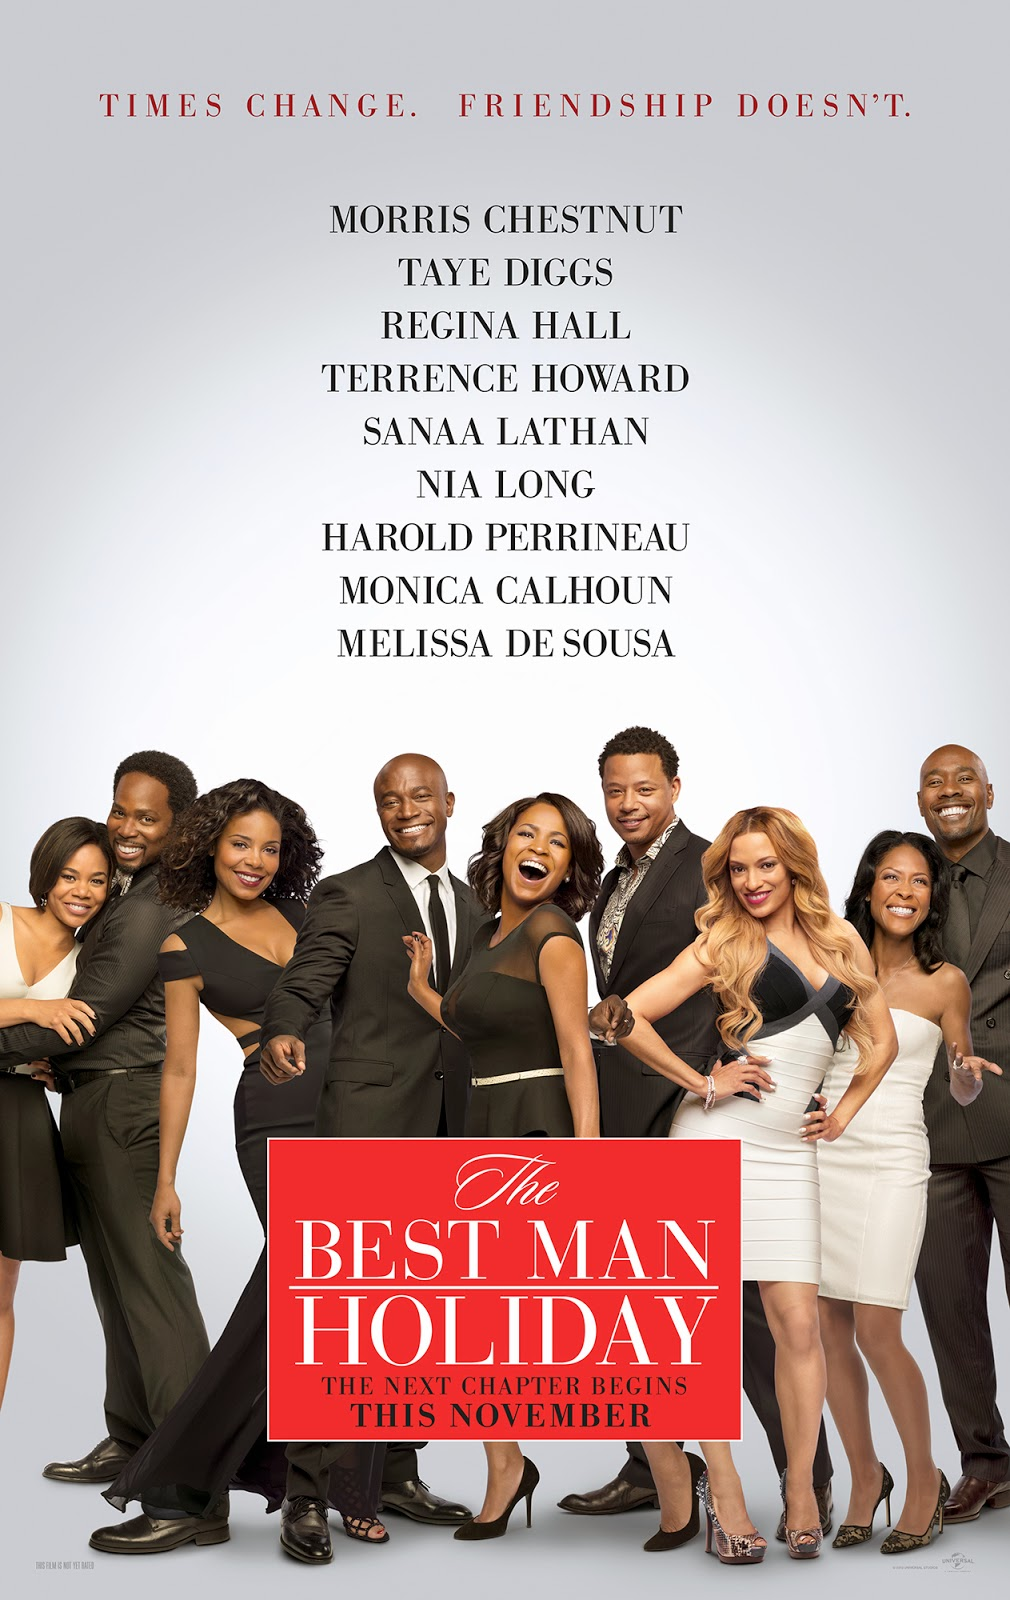 The 25 Days of Christmas: Day 3. The Best Man Holiday